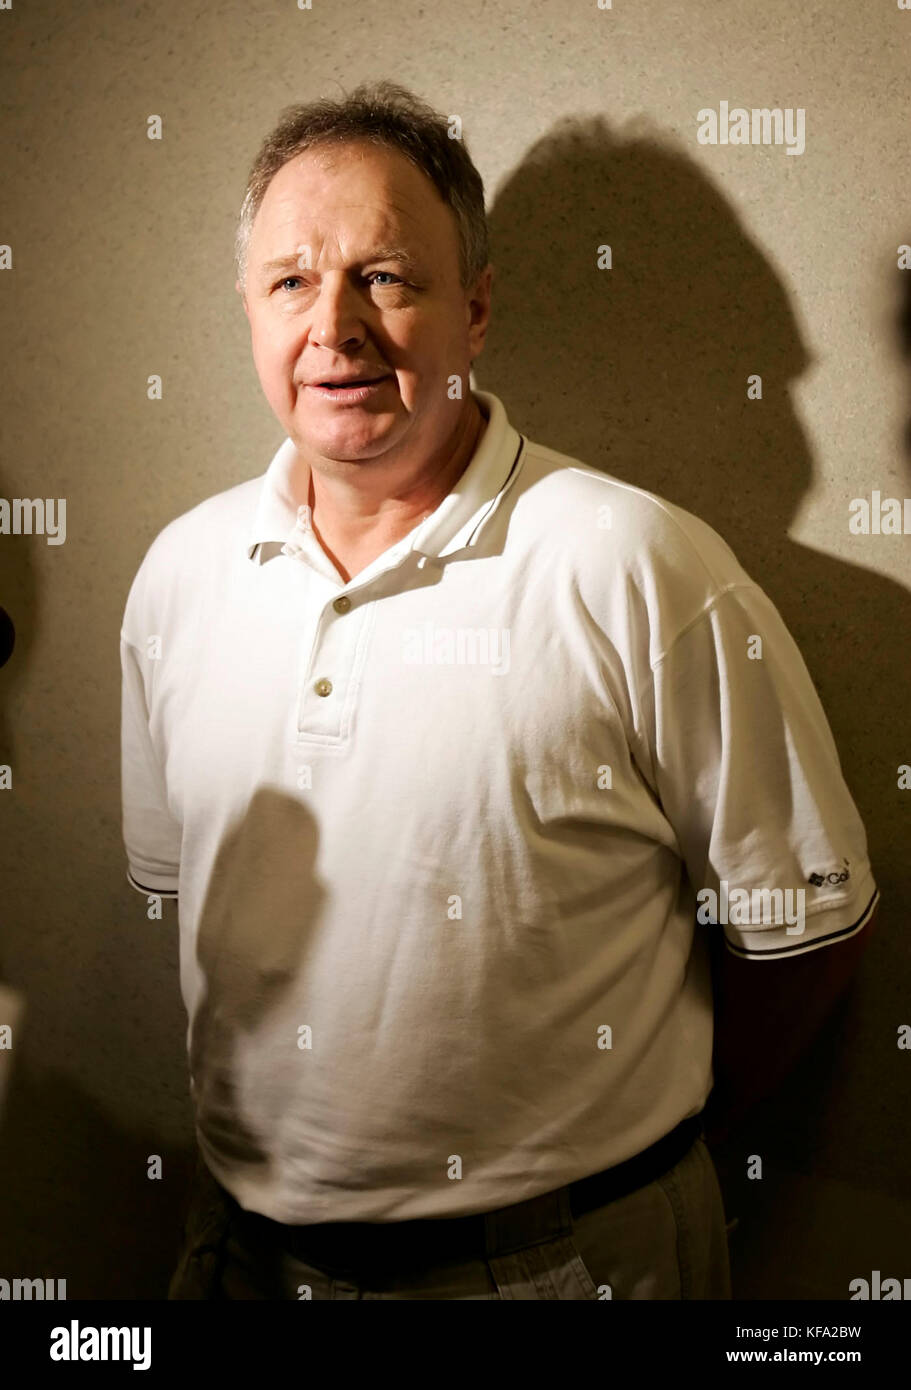 Anaheim Mighty Ducks head coach Randy Carlyle speaks to the media after a team workout in Anaheim, Calif. on Saturday, - Stock Image